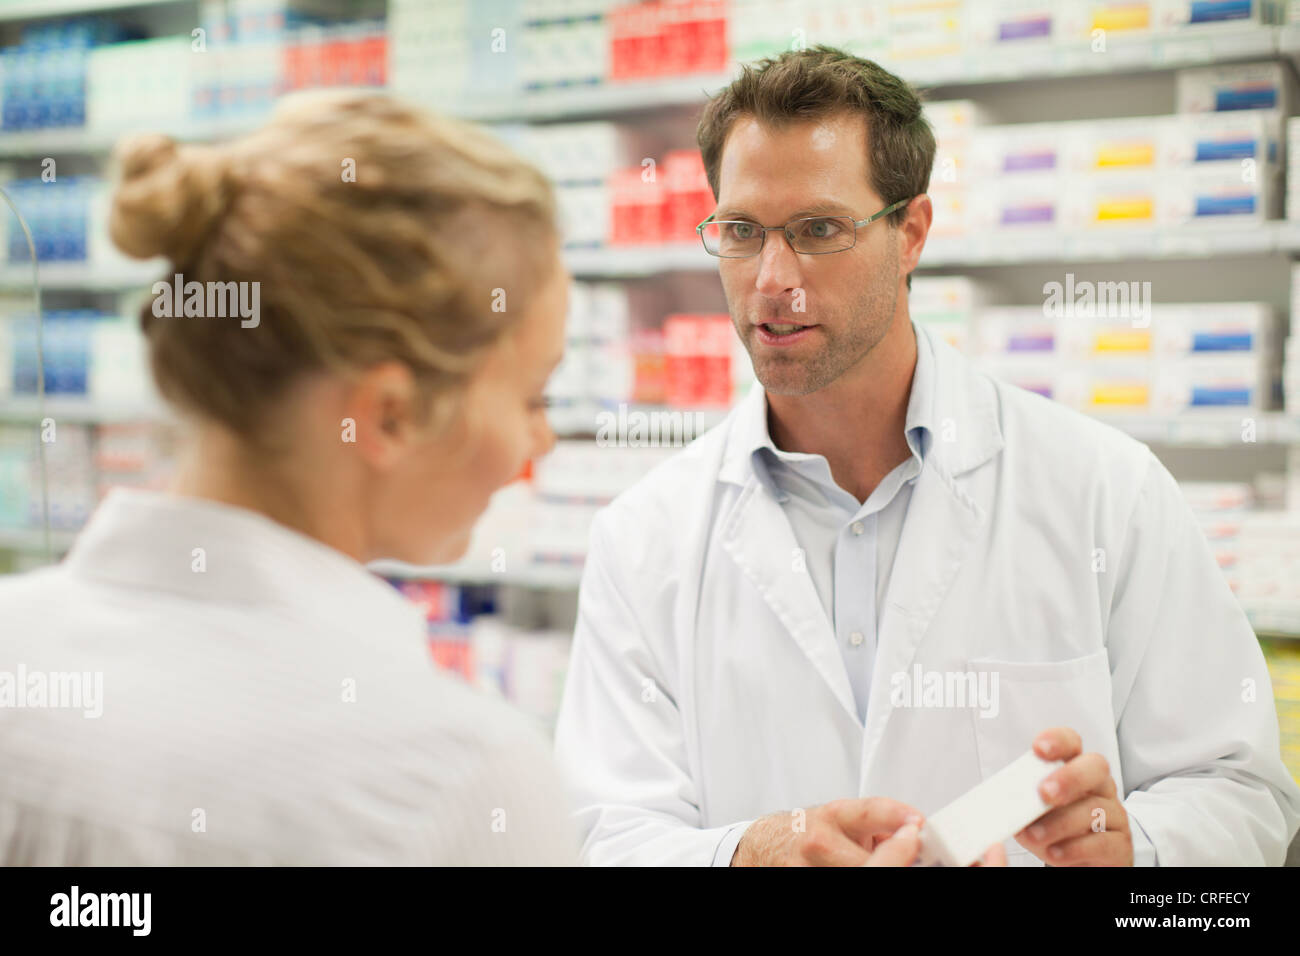 Drug Counseling Stock Photos Drug Counseling Stock Images Alamy